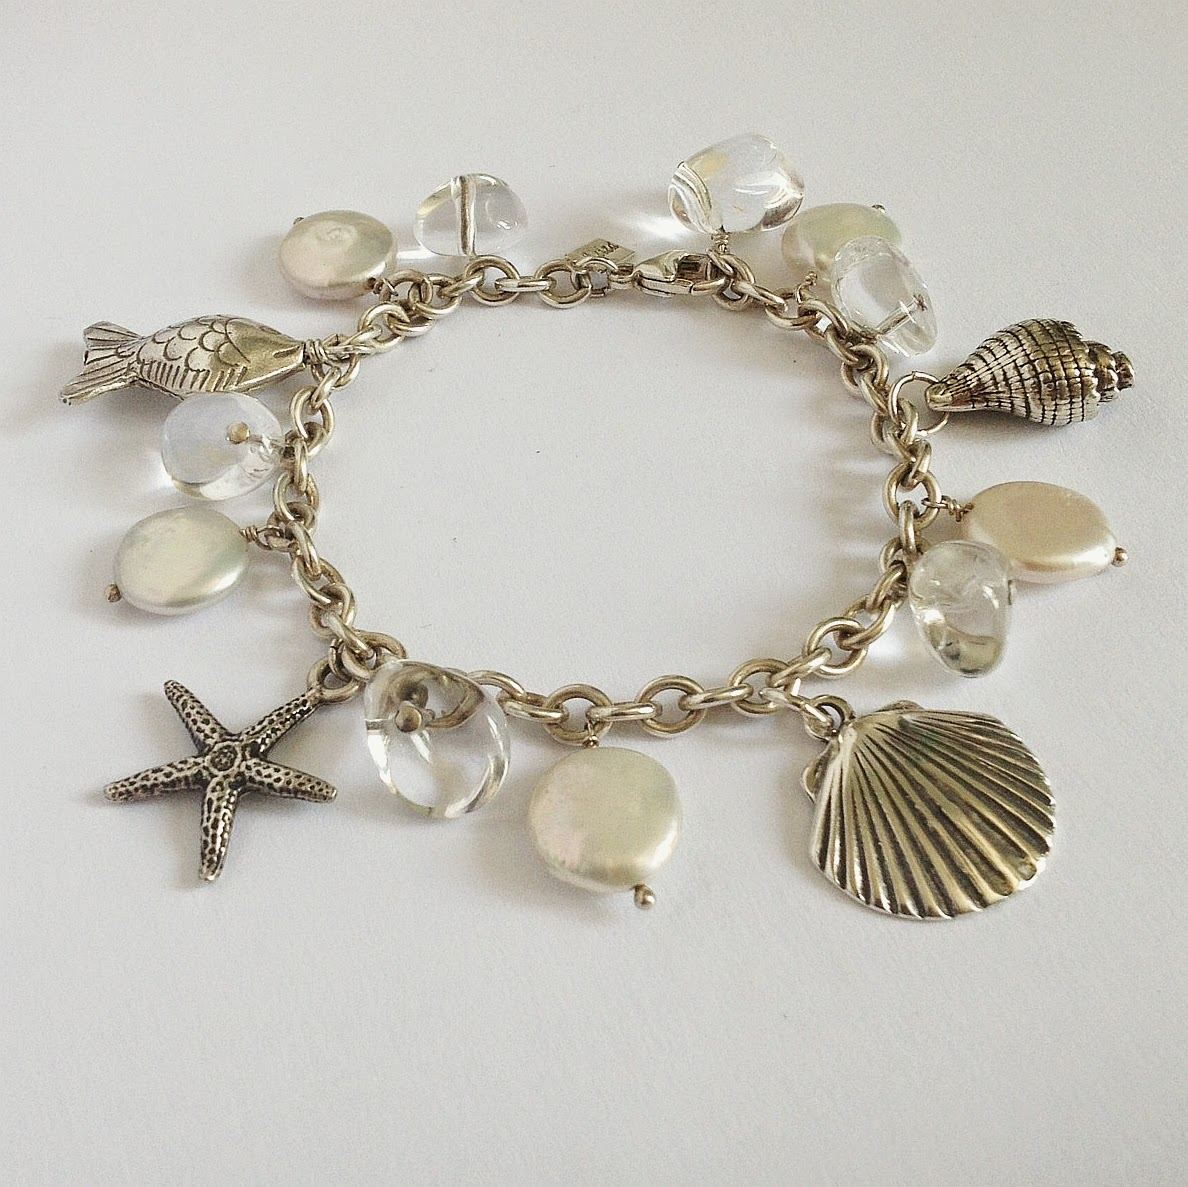 https://www.etsy.com/listing/191254500/beach-bracelet-clamshell-starfish-conch